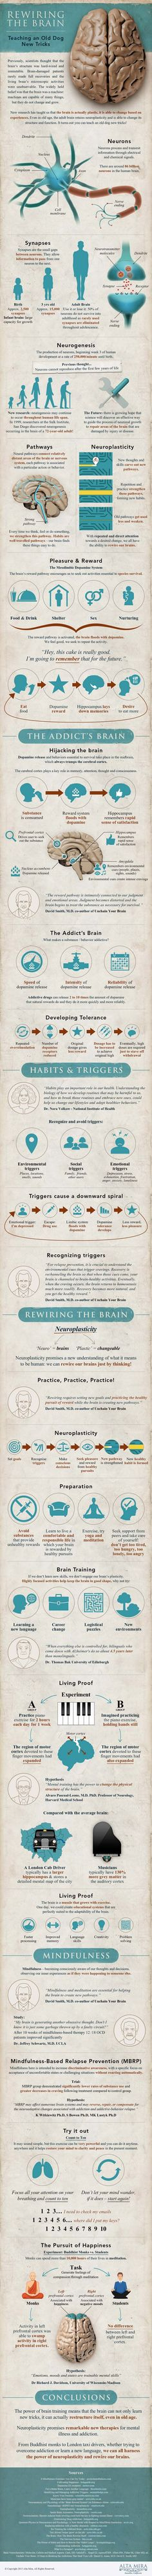 Rewiring The Brain - We do control how well we Understand! The Brain is Elastic, | #lifeadvancer | @lifeadvancer